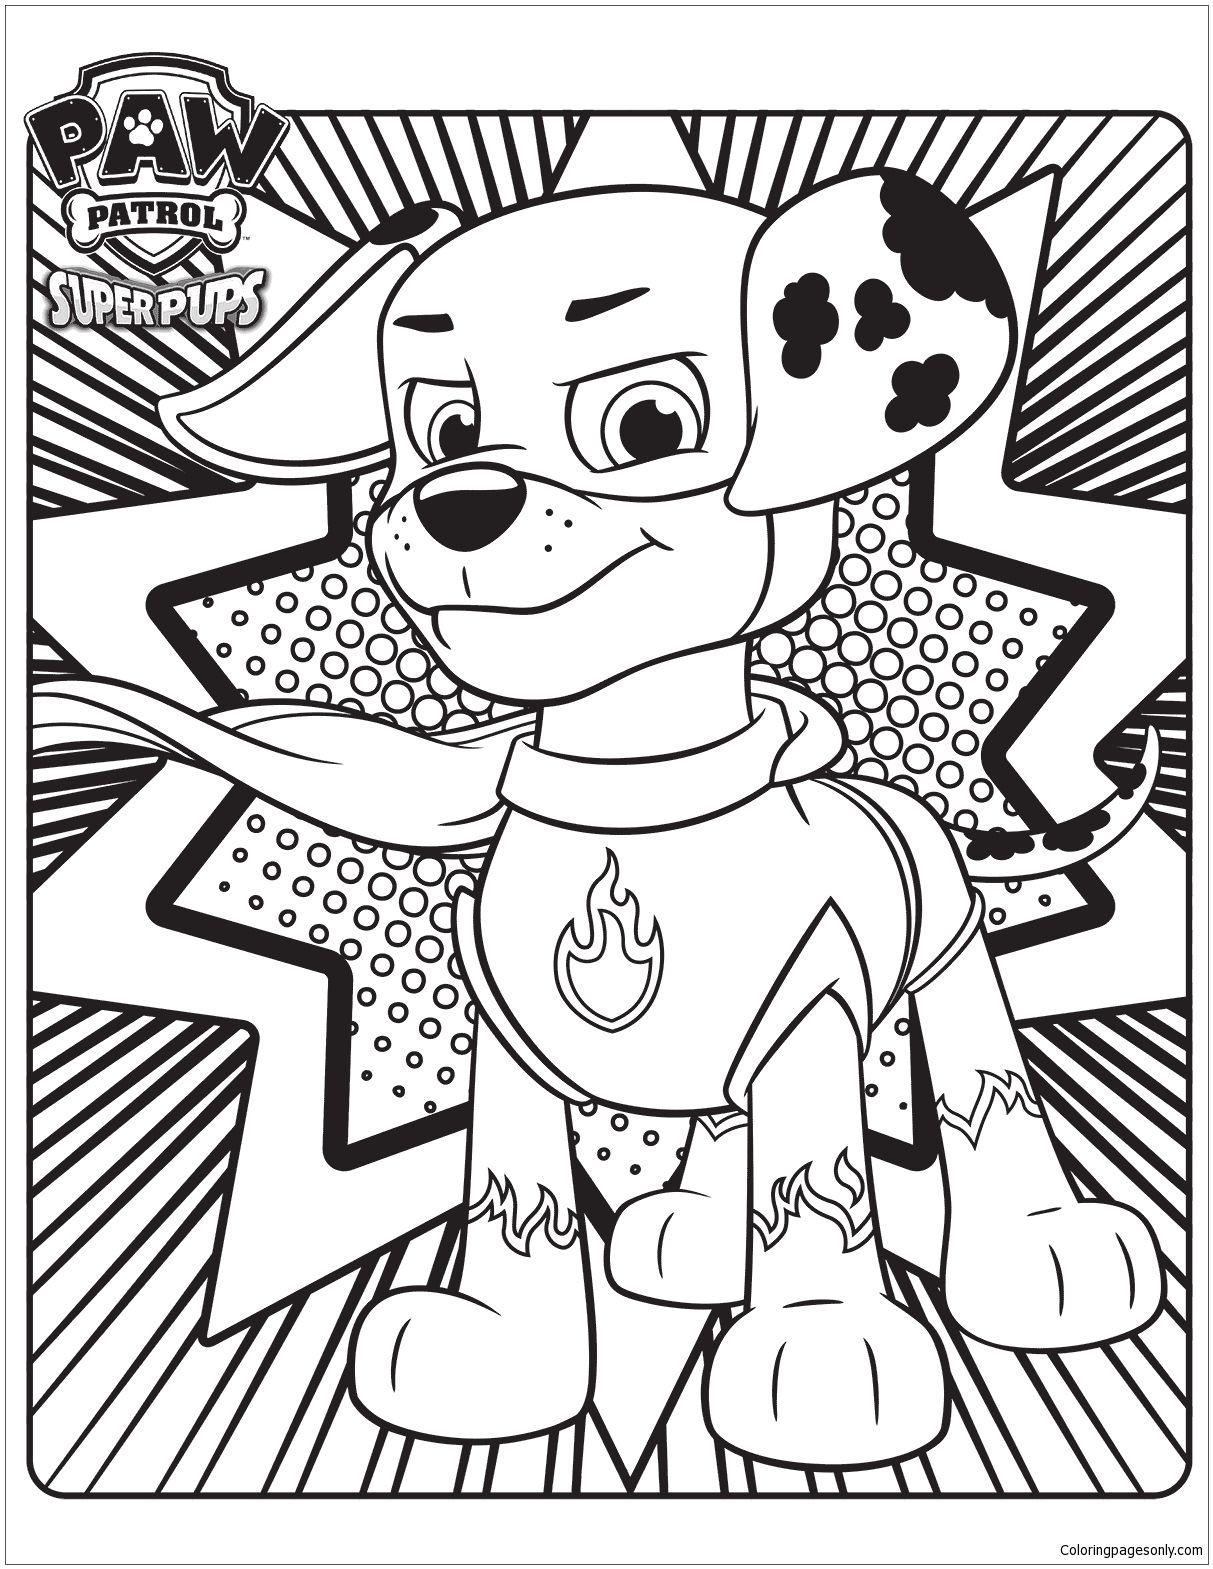 Paw Patrol Super Pups 3 Coloring Page